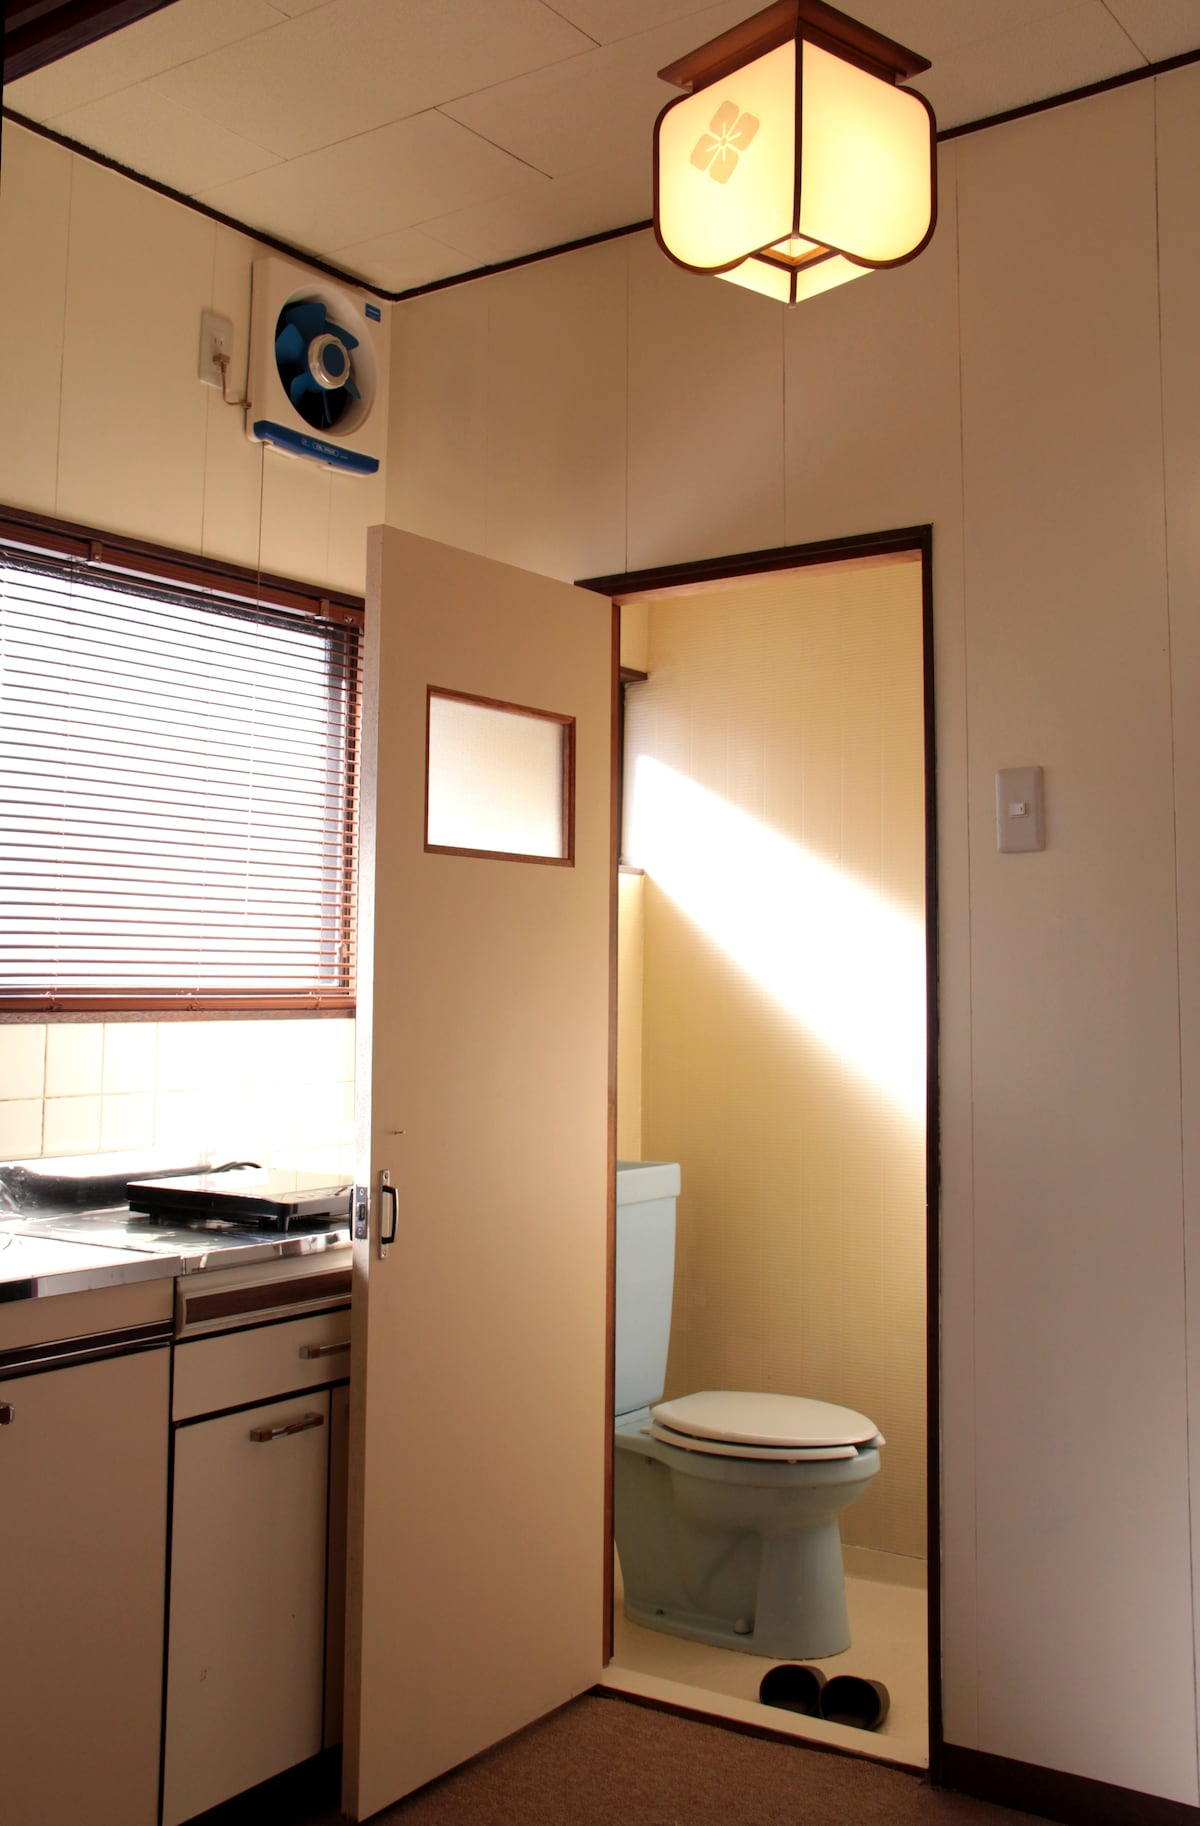 Each room has its own personal Western style restroom.